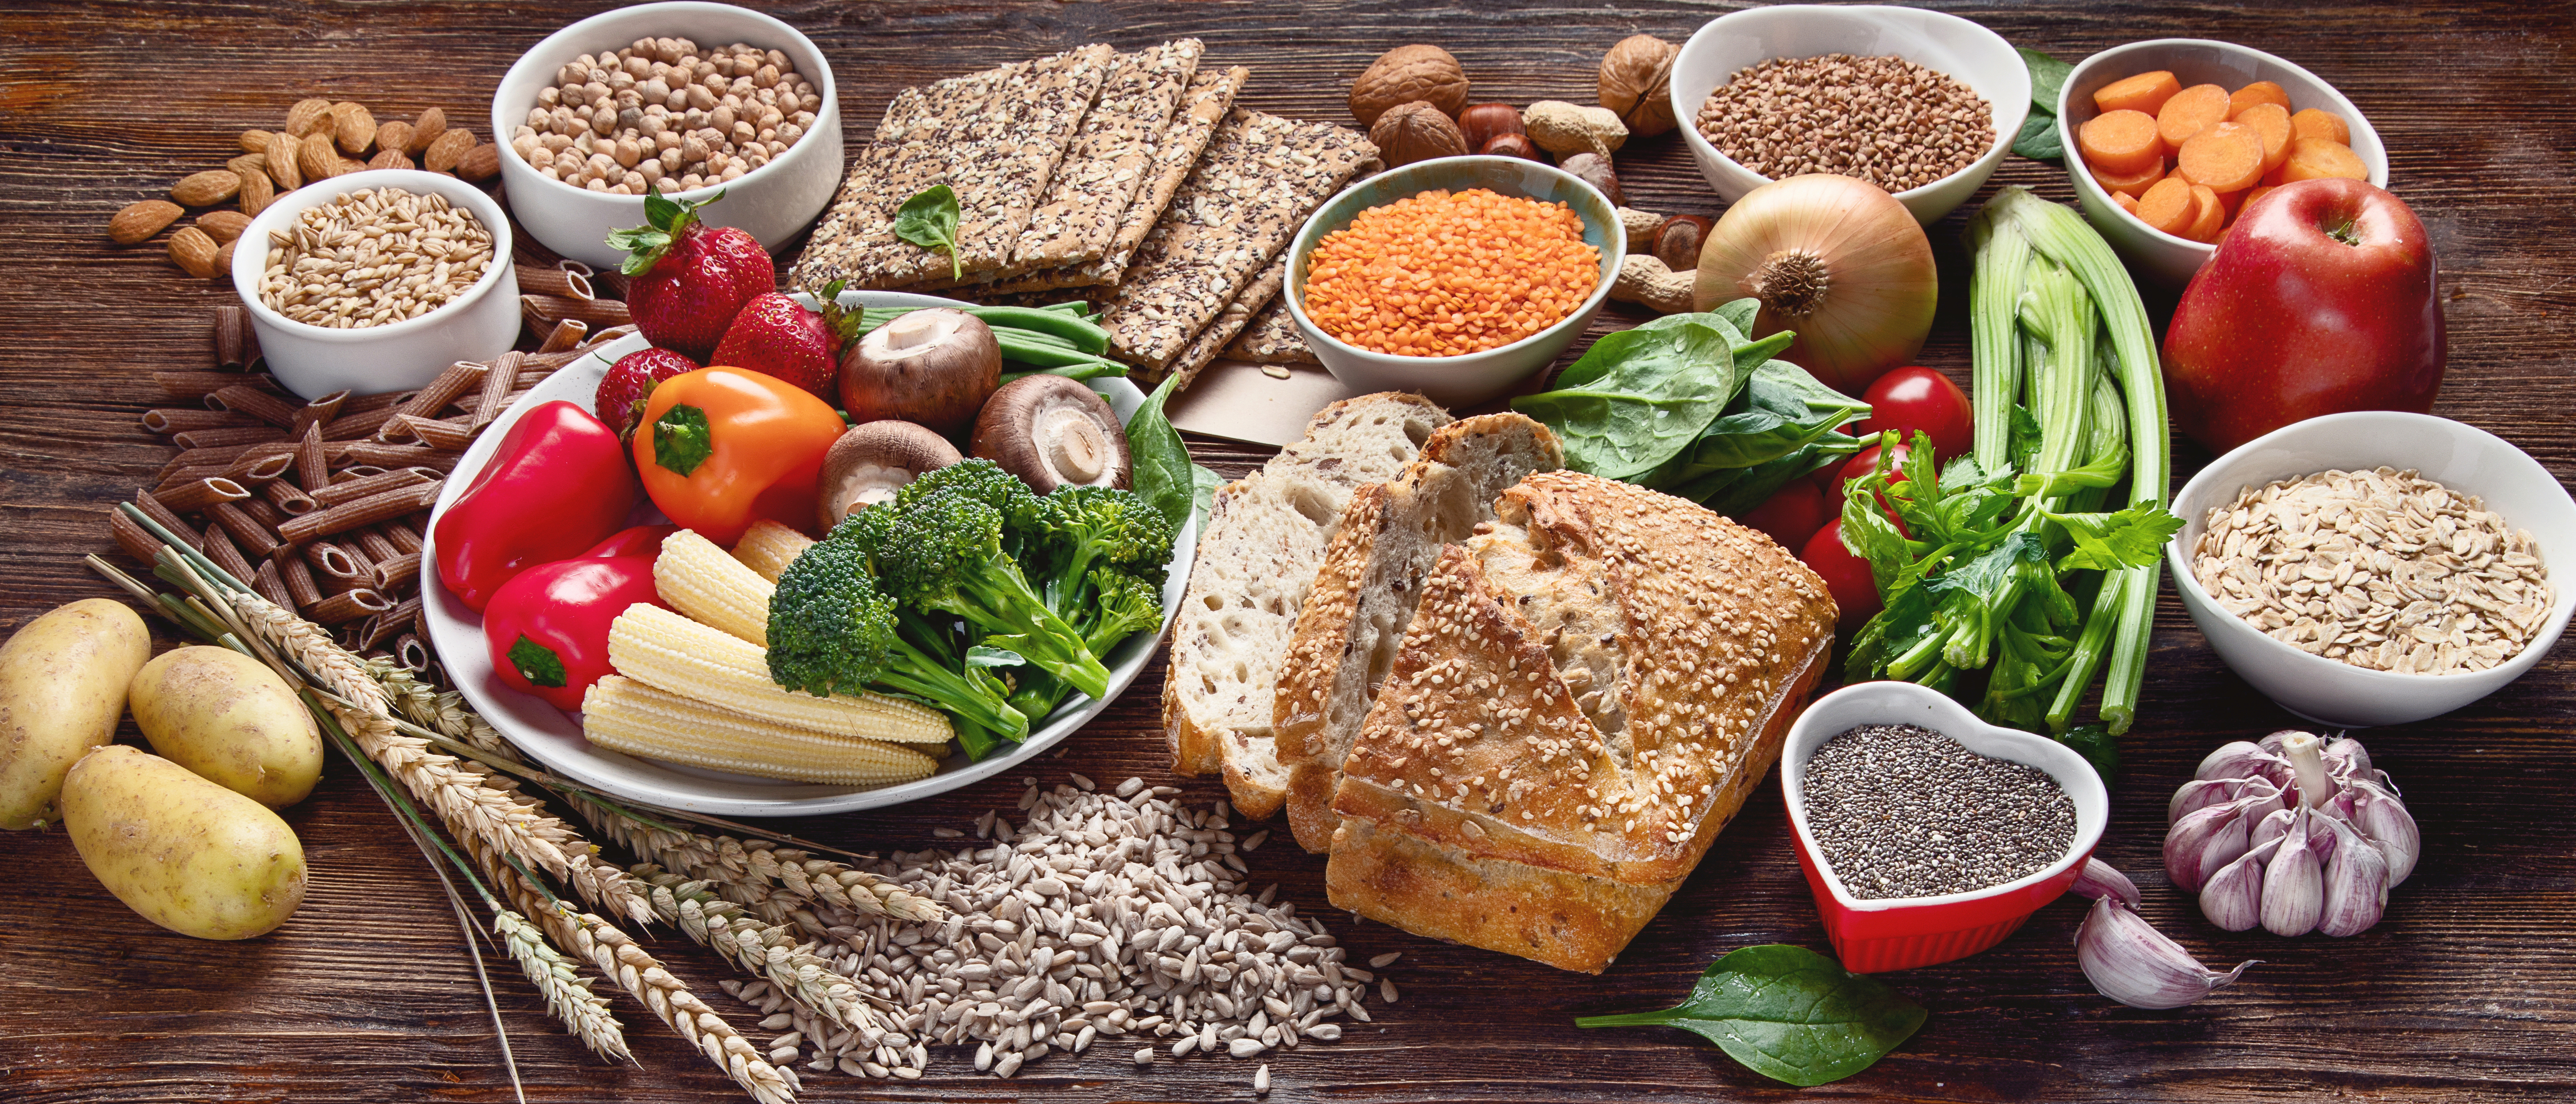 Healthy natural ingredients  containing  dietary fiber. Healthy high fiber diet eating concept with antioxidants and vitamins.  Panorama, banner